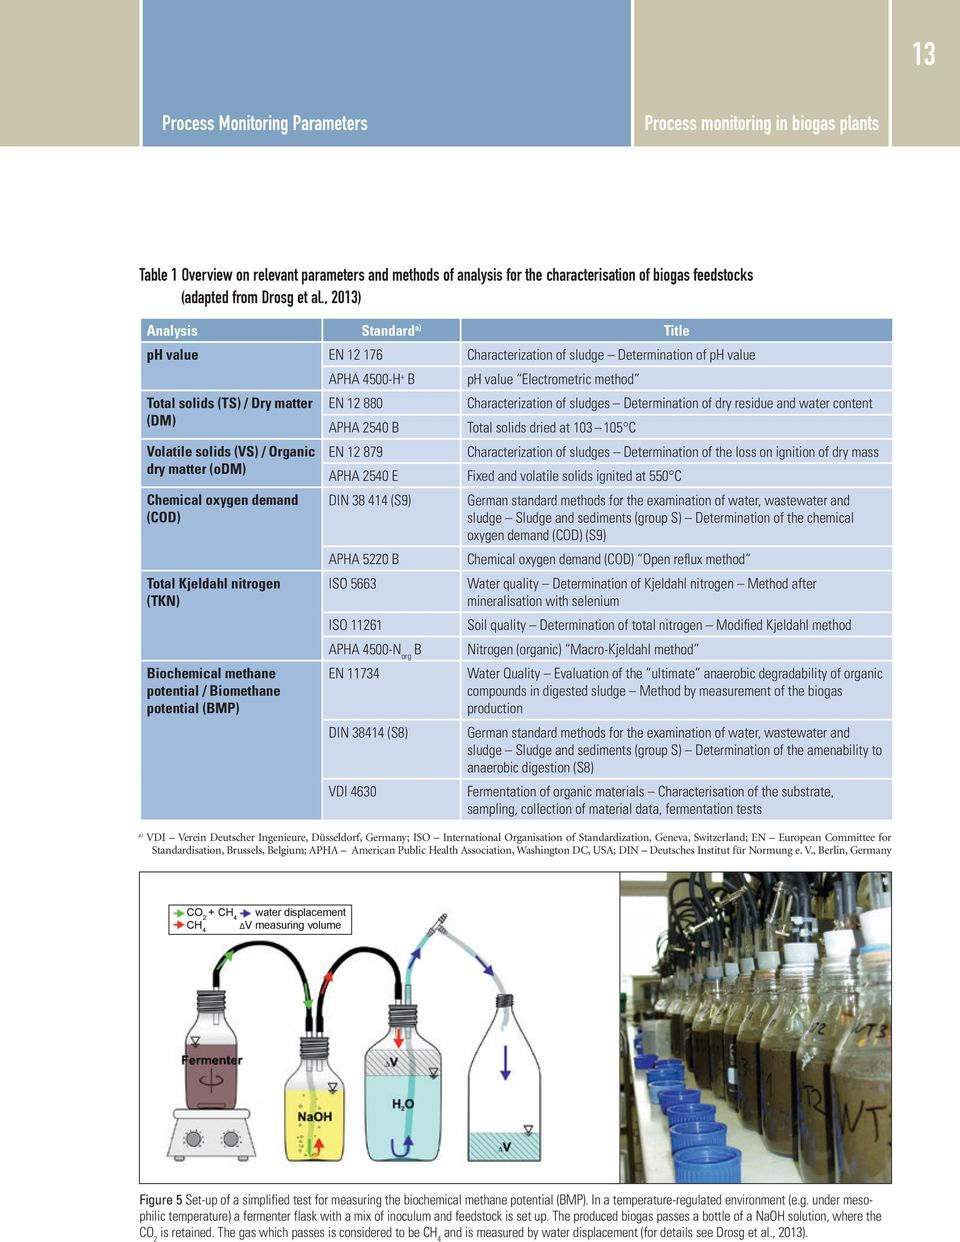 oxygen demand (COD) Total Kjeldahl nitrogen (TKN) Biochemical methane potential / Biomethane potential (BMP) APHA 4500-H + B ph value Electrometric method EN 12 880 Characterization of sludges